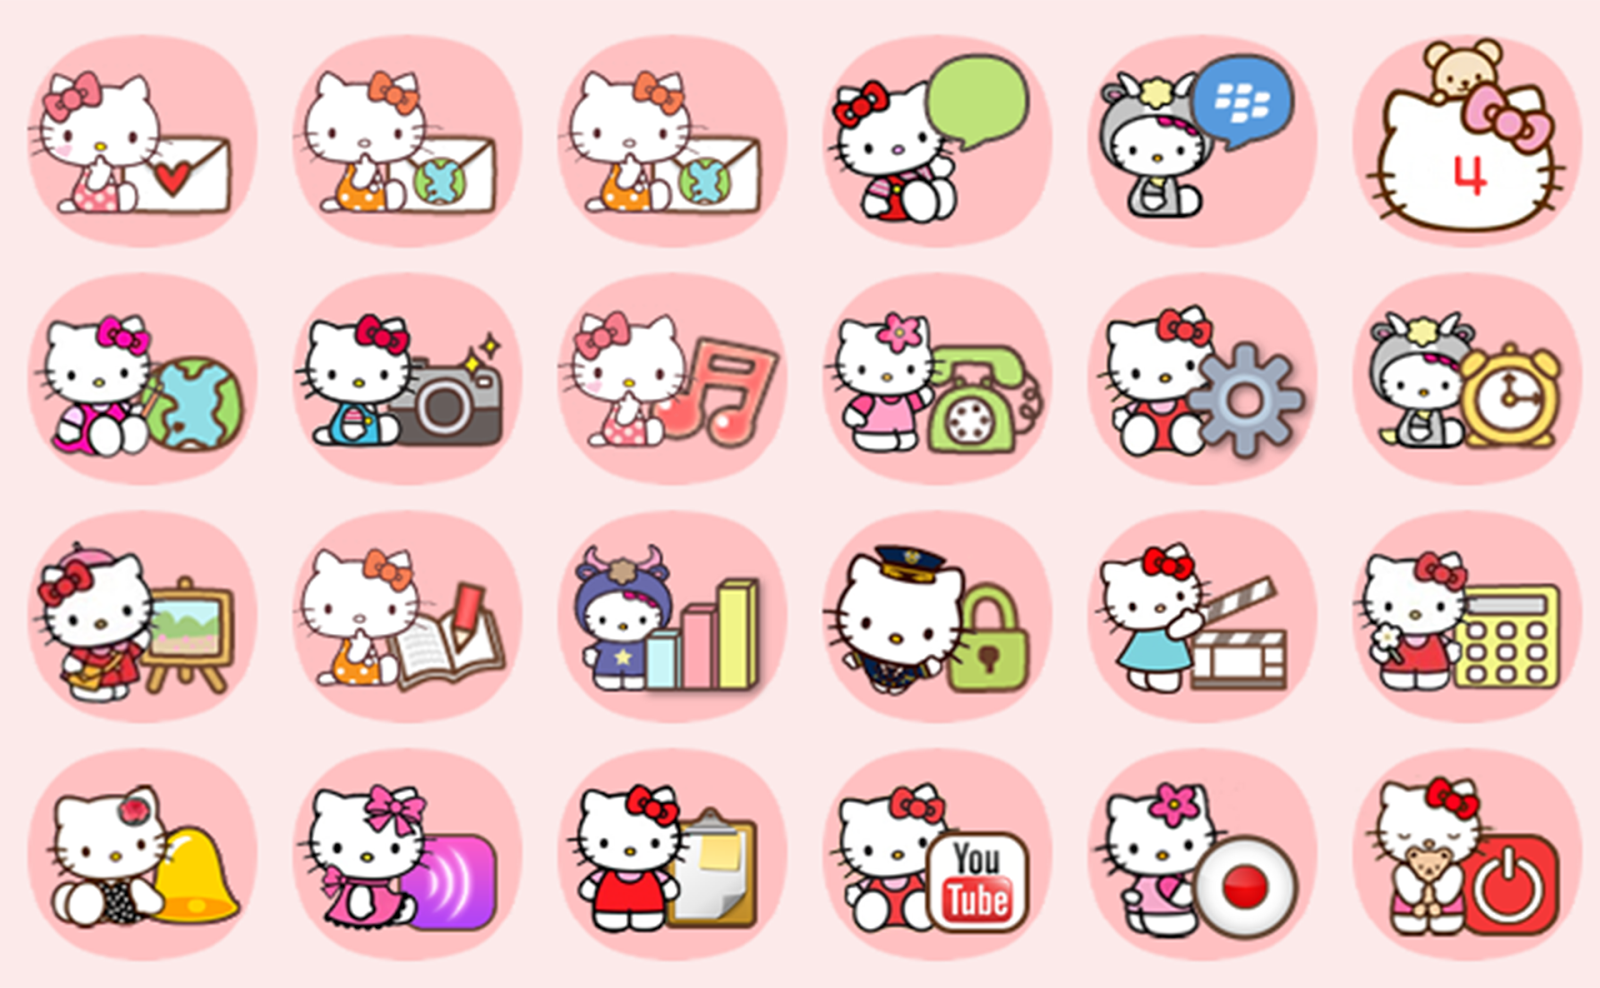 Amazing Wallpaper Hello Kitty Blackberry - f8e6648e99a3cea52216809800a097a7  You Should Have_74576.png